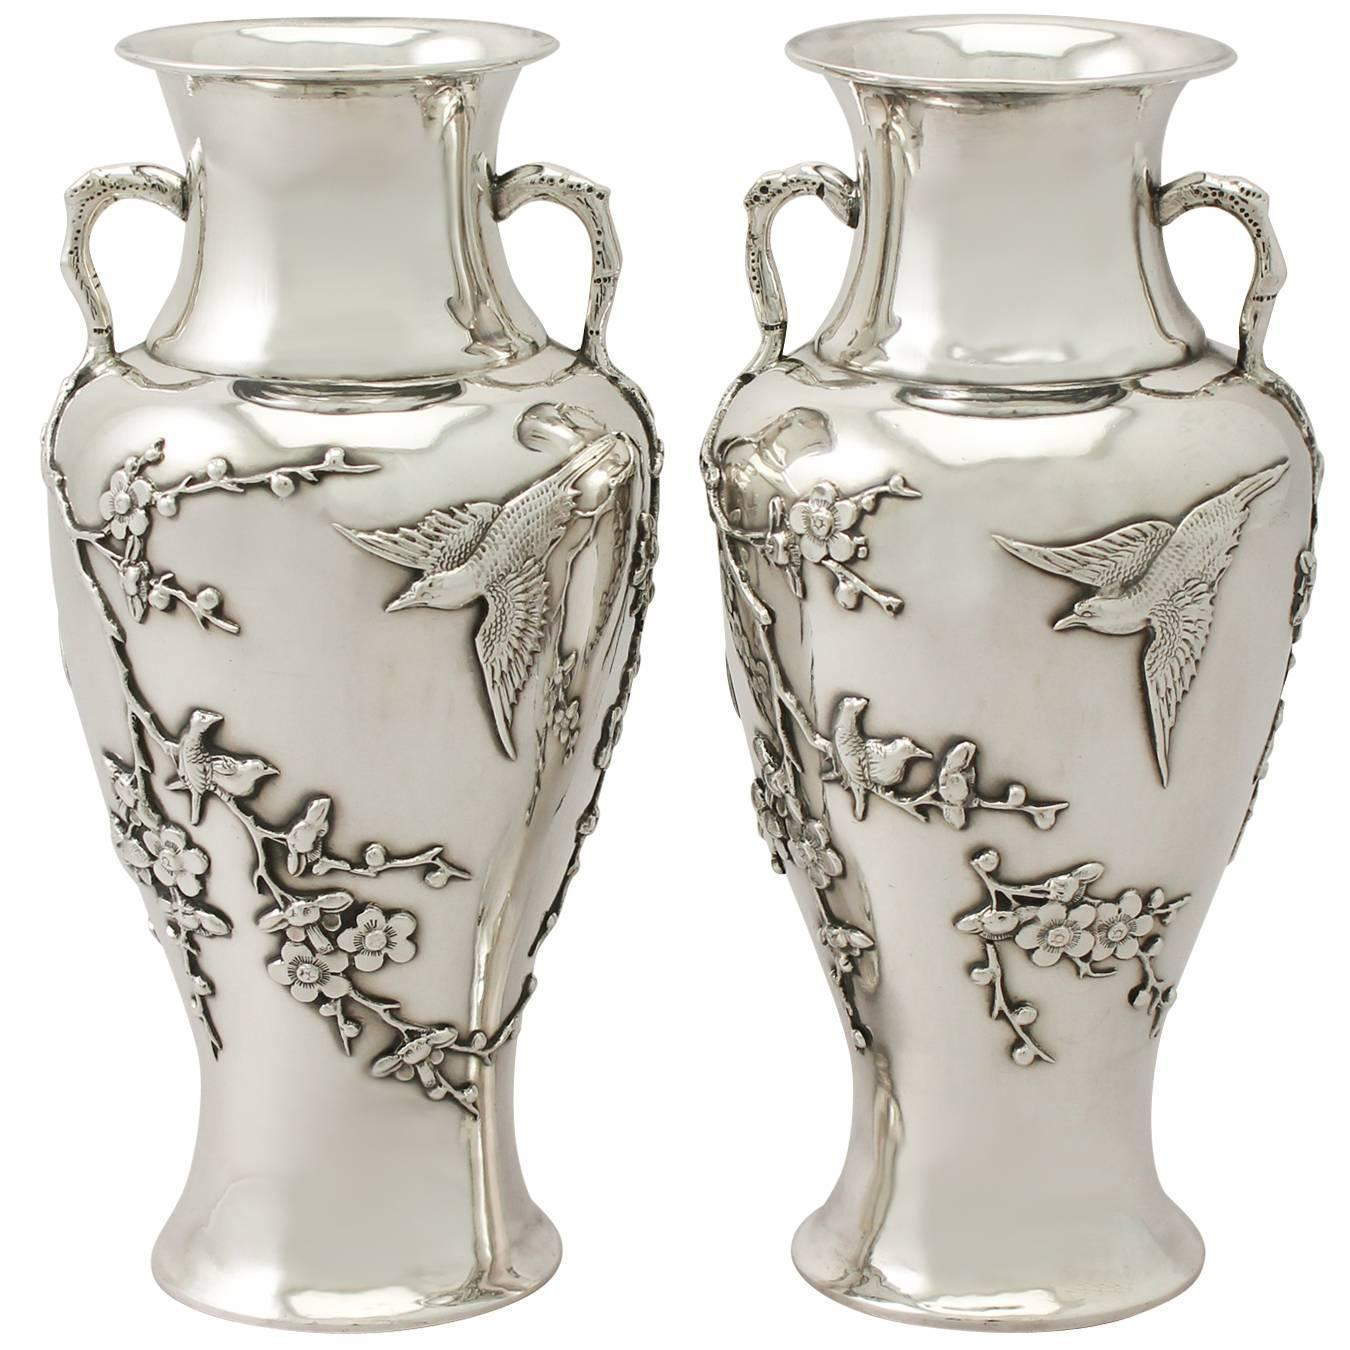 Silver Vases Pair Of Chinese Export Silver Vases Antique Circa 1890 For Sale